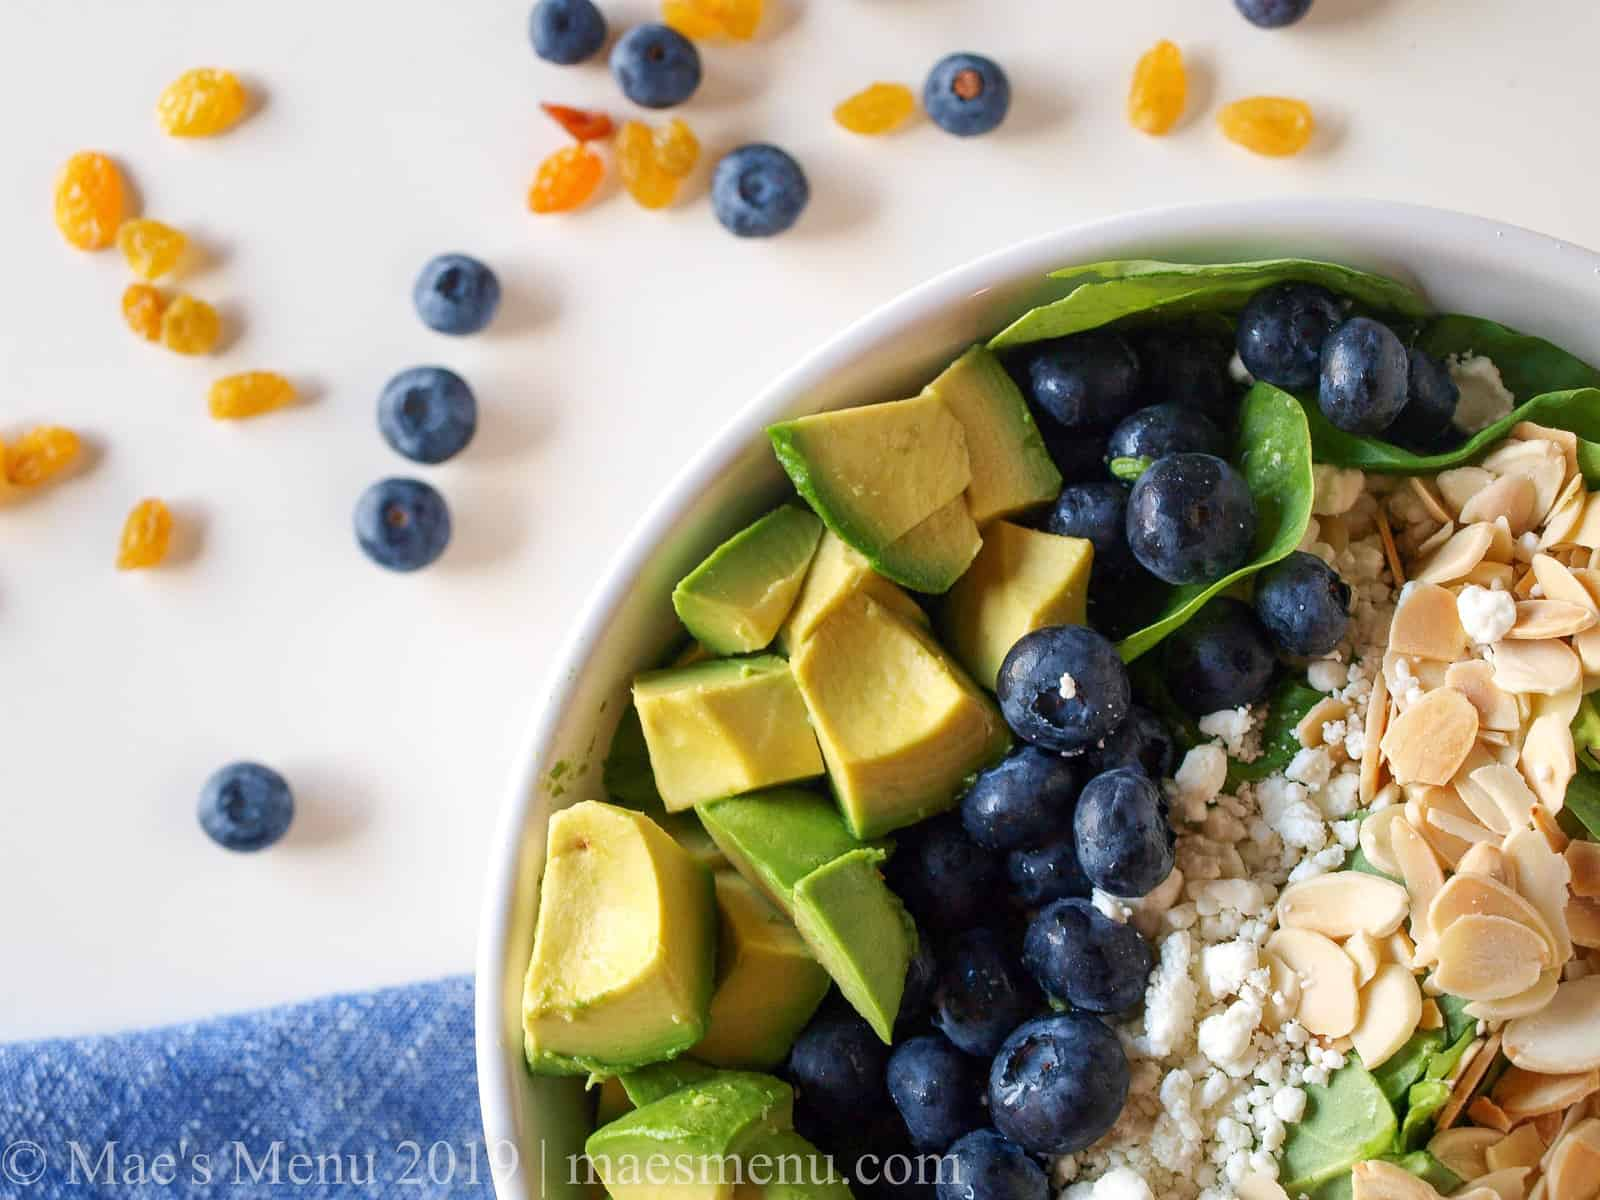 Blueberry spinach salad in a large white bowl.